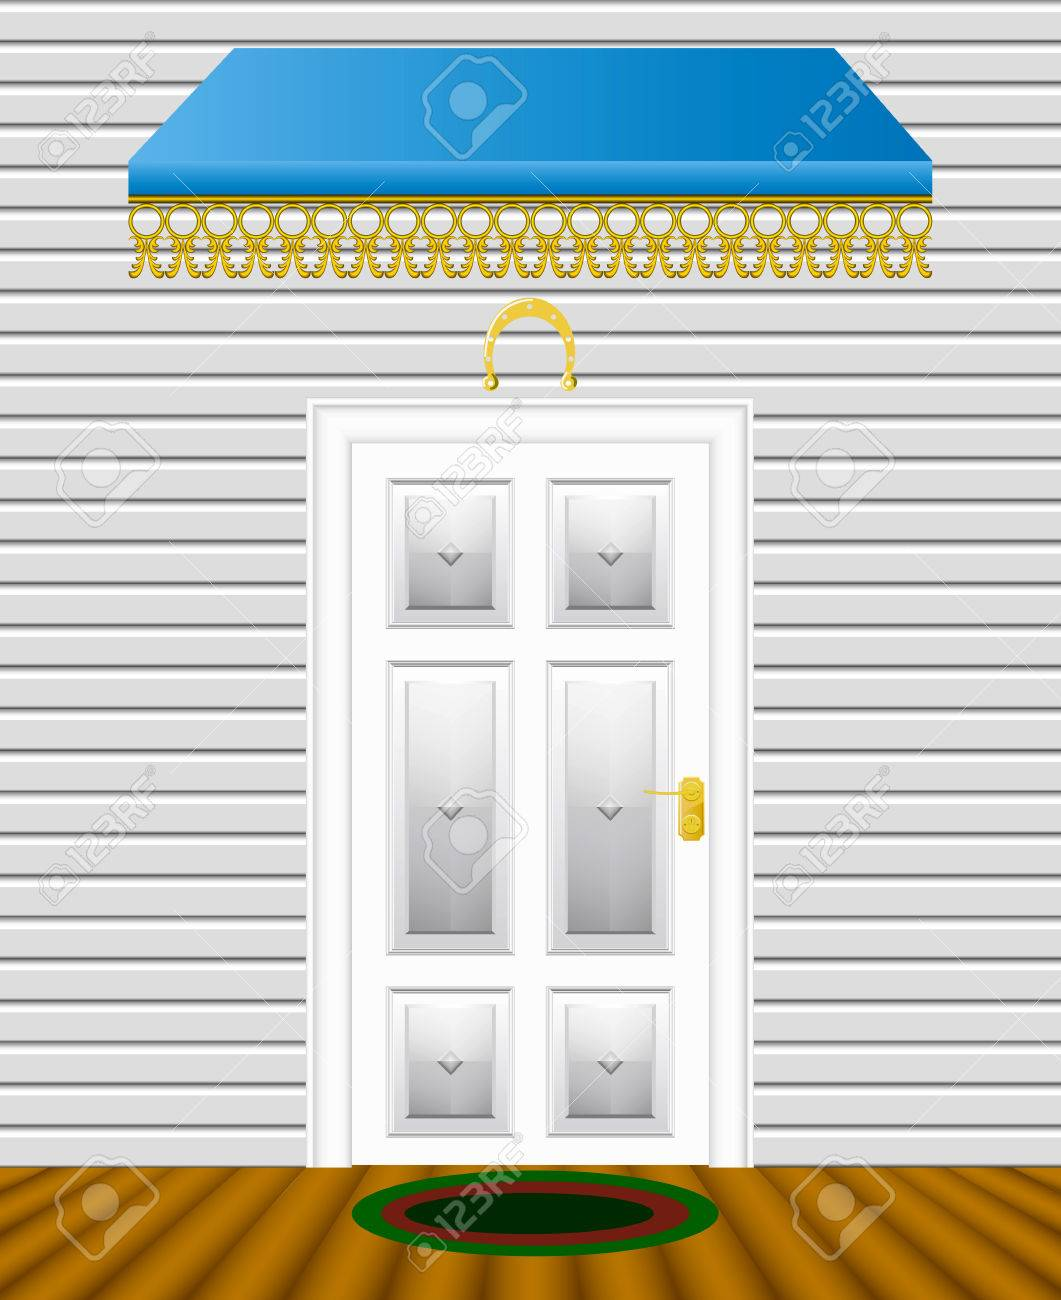 The entrance door of the house is shown in the picture. - 9134941